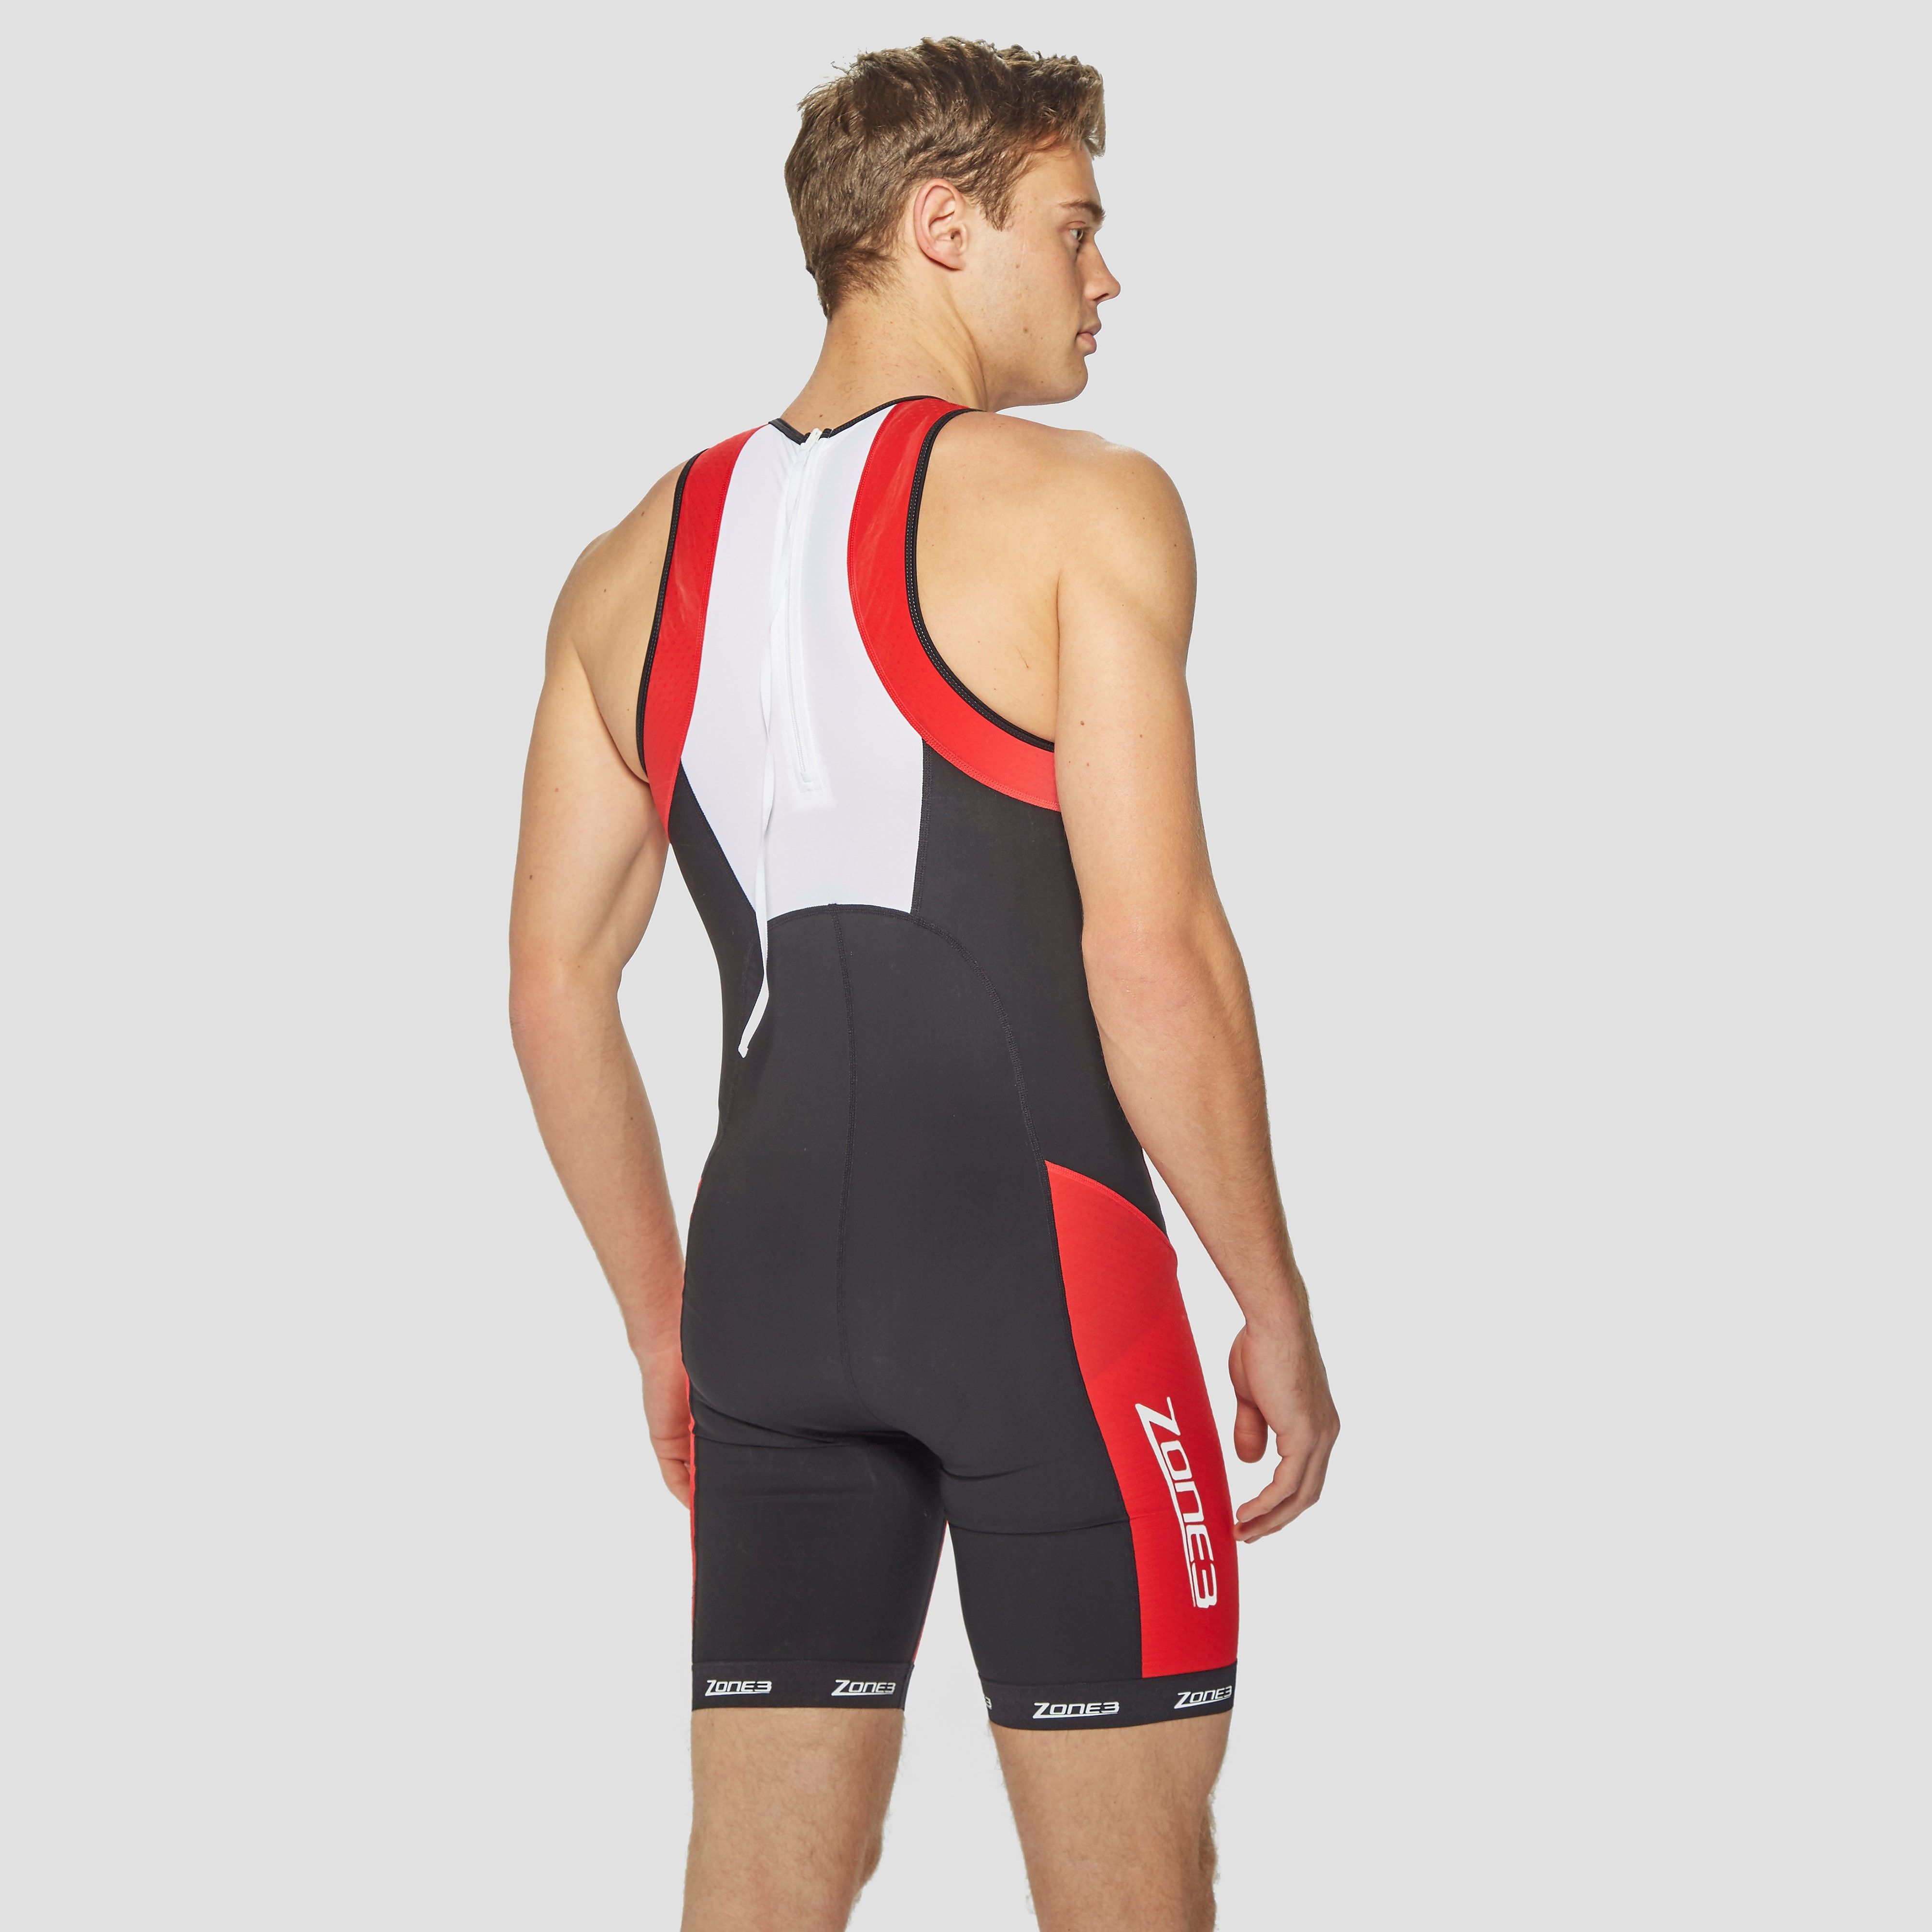 Zone 3 Aeroforce Sub 220 Men's Tri Suit